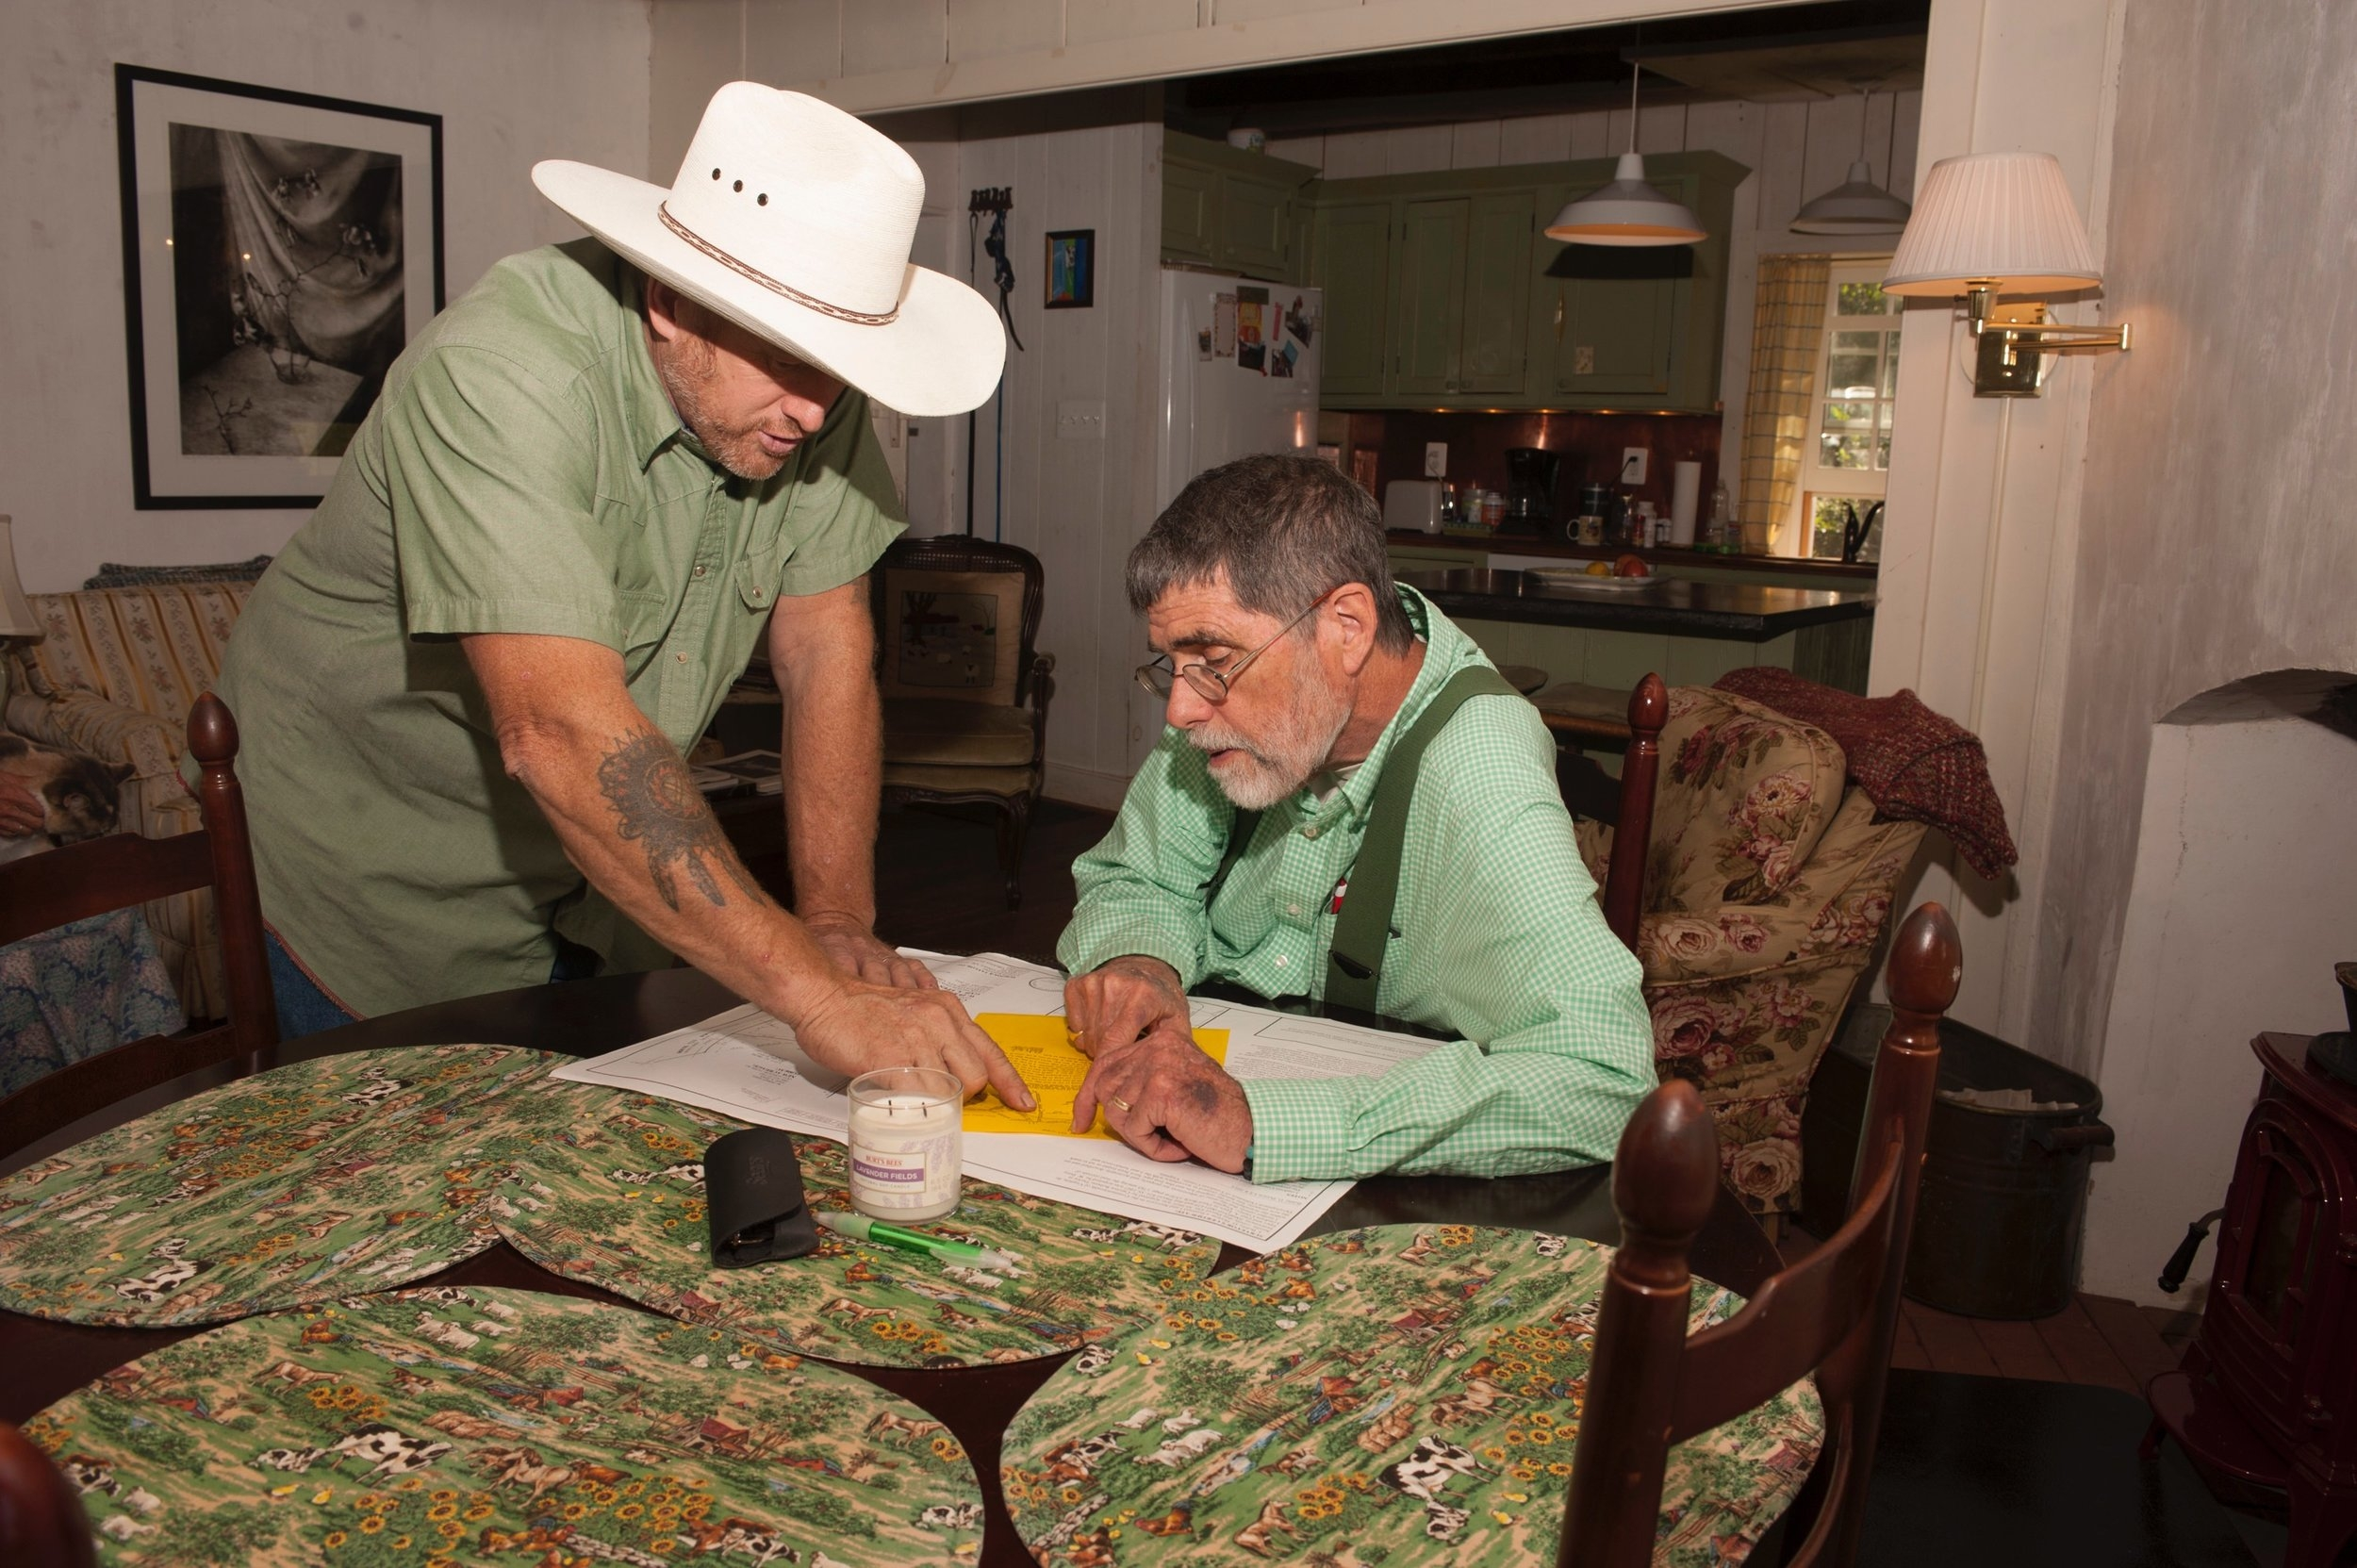 Allen Cochran reviews the property plat with Perry Epes as they make plans for a fence.